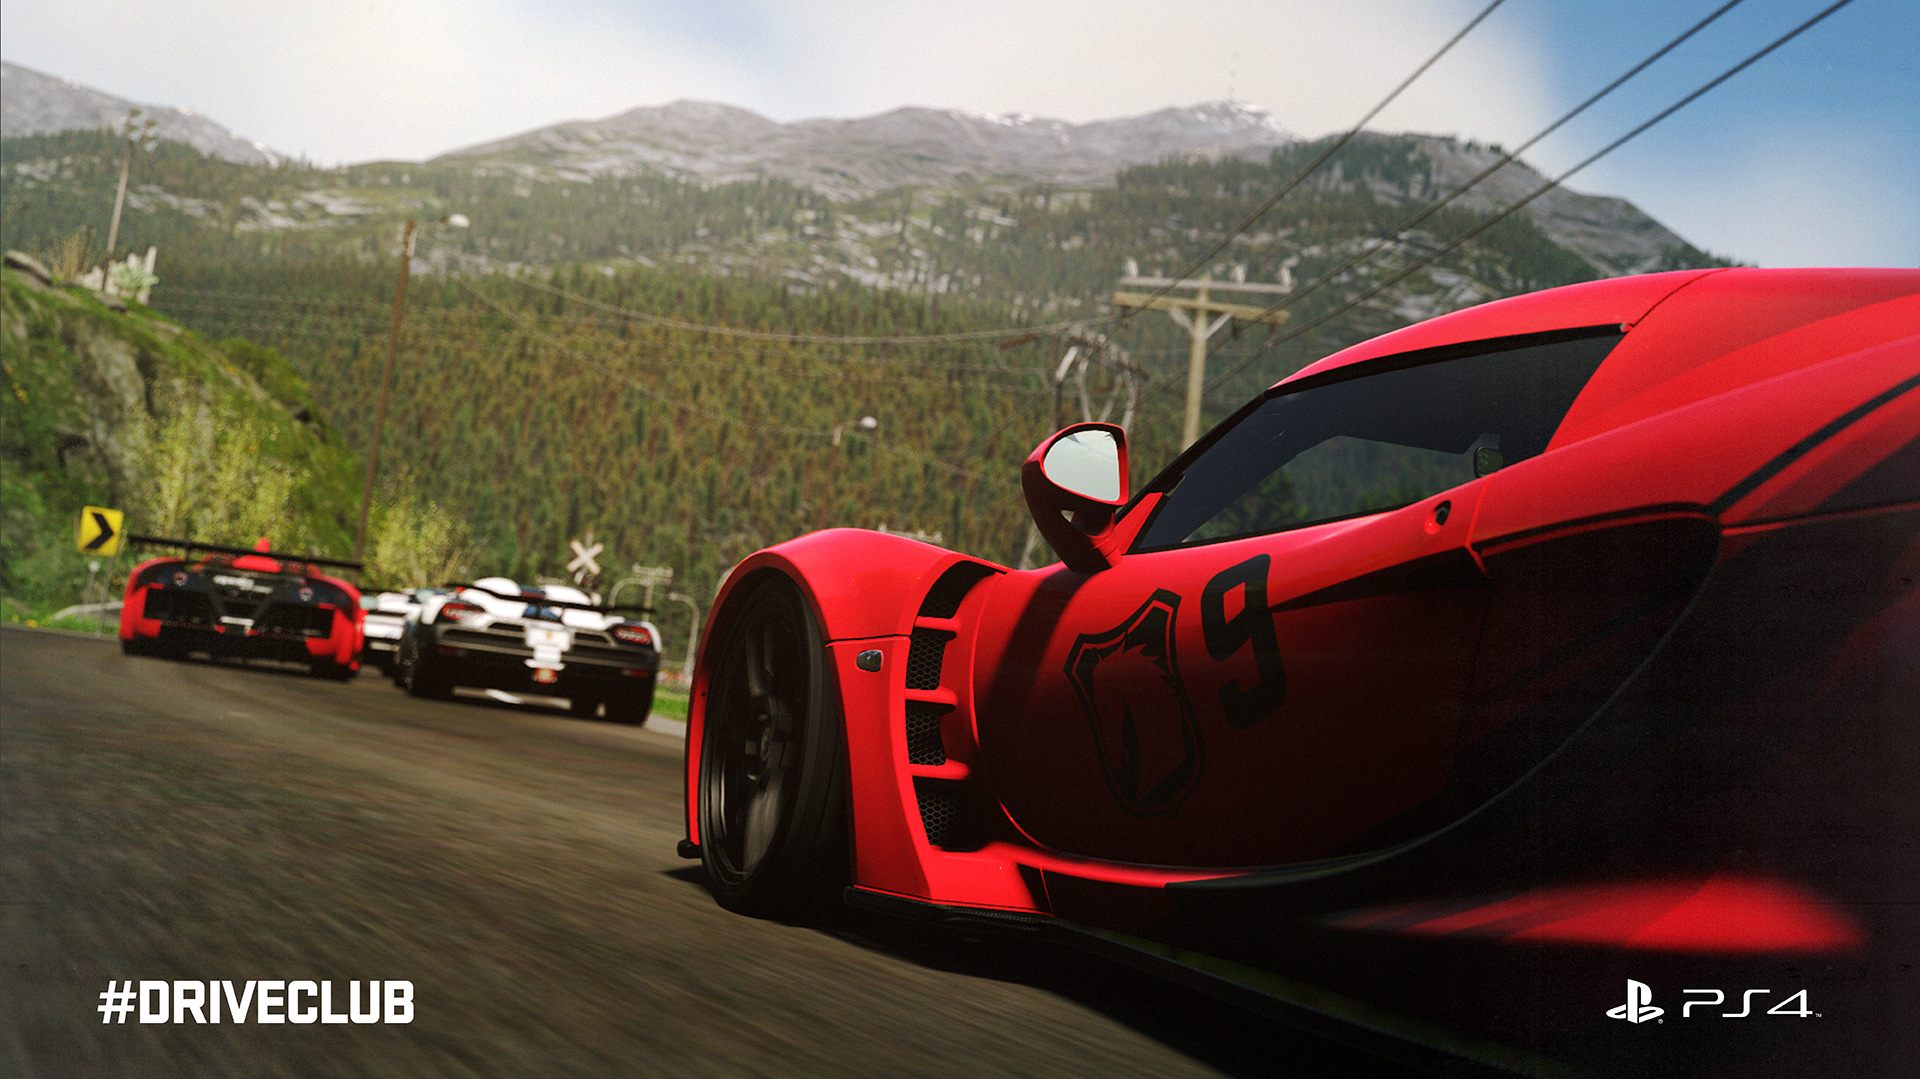 DriveClub PS Plus Edition upgrade buyers will now get to keep playing after PS Plus expires